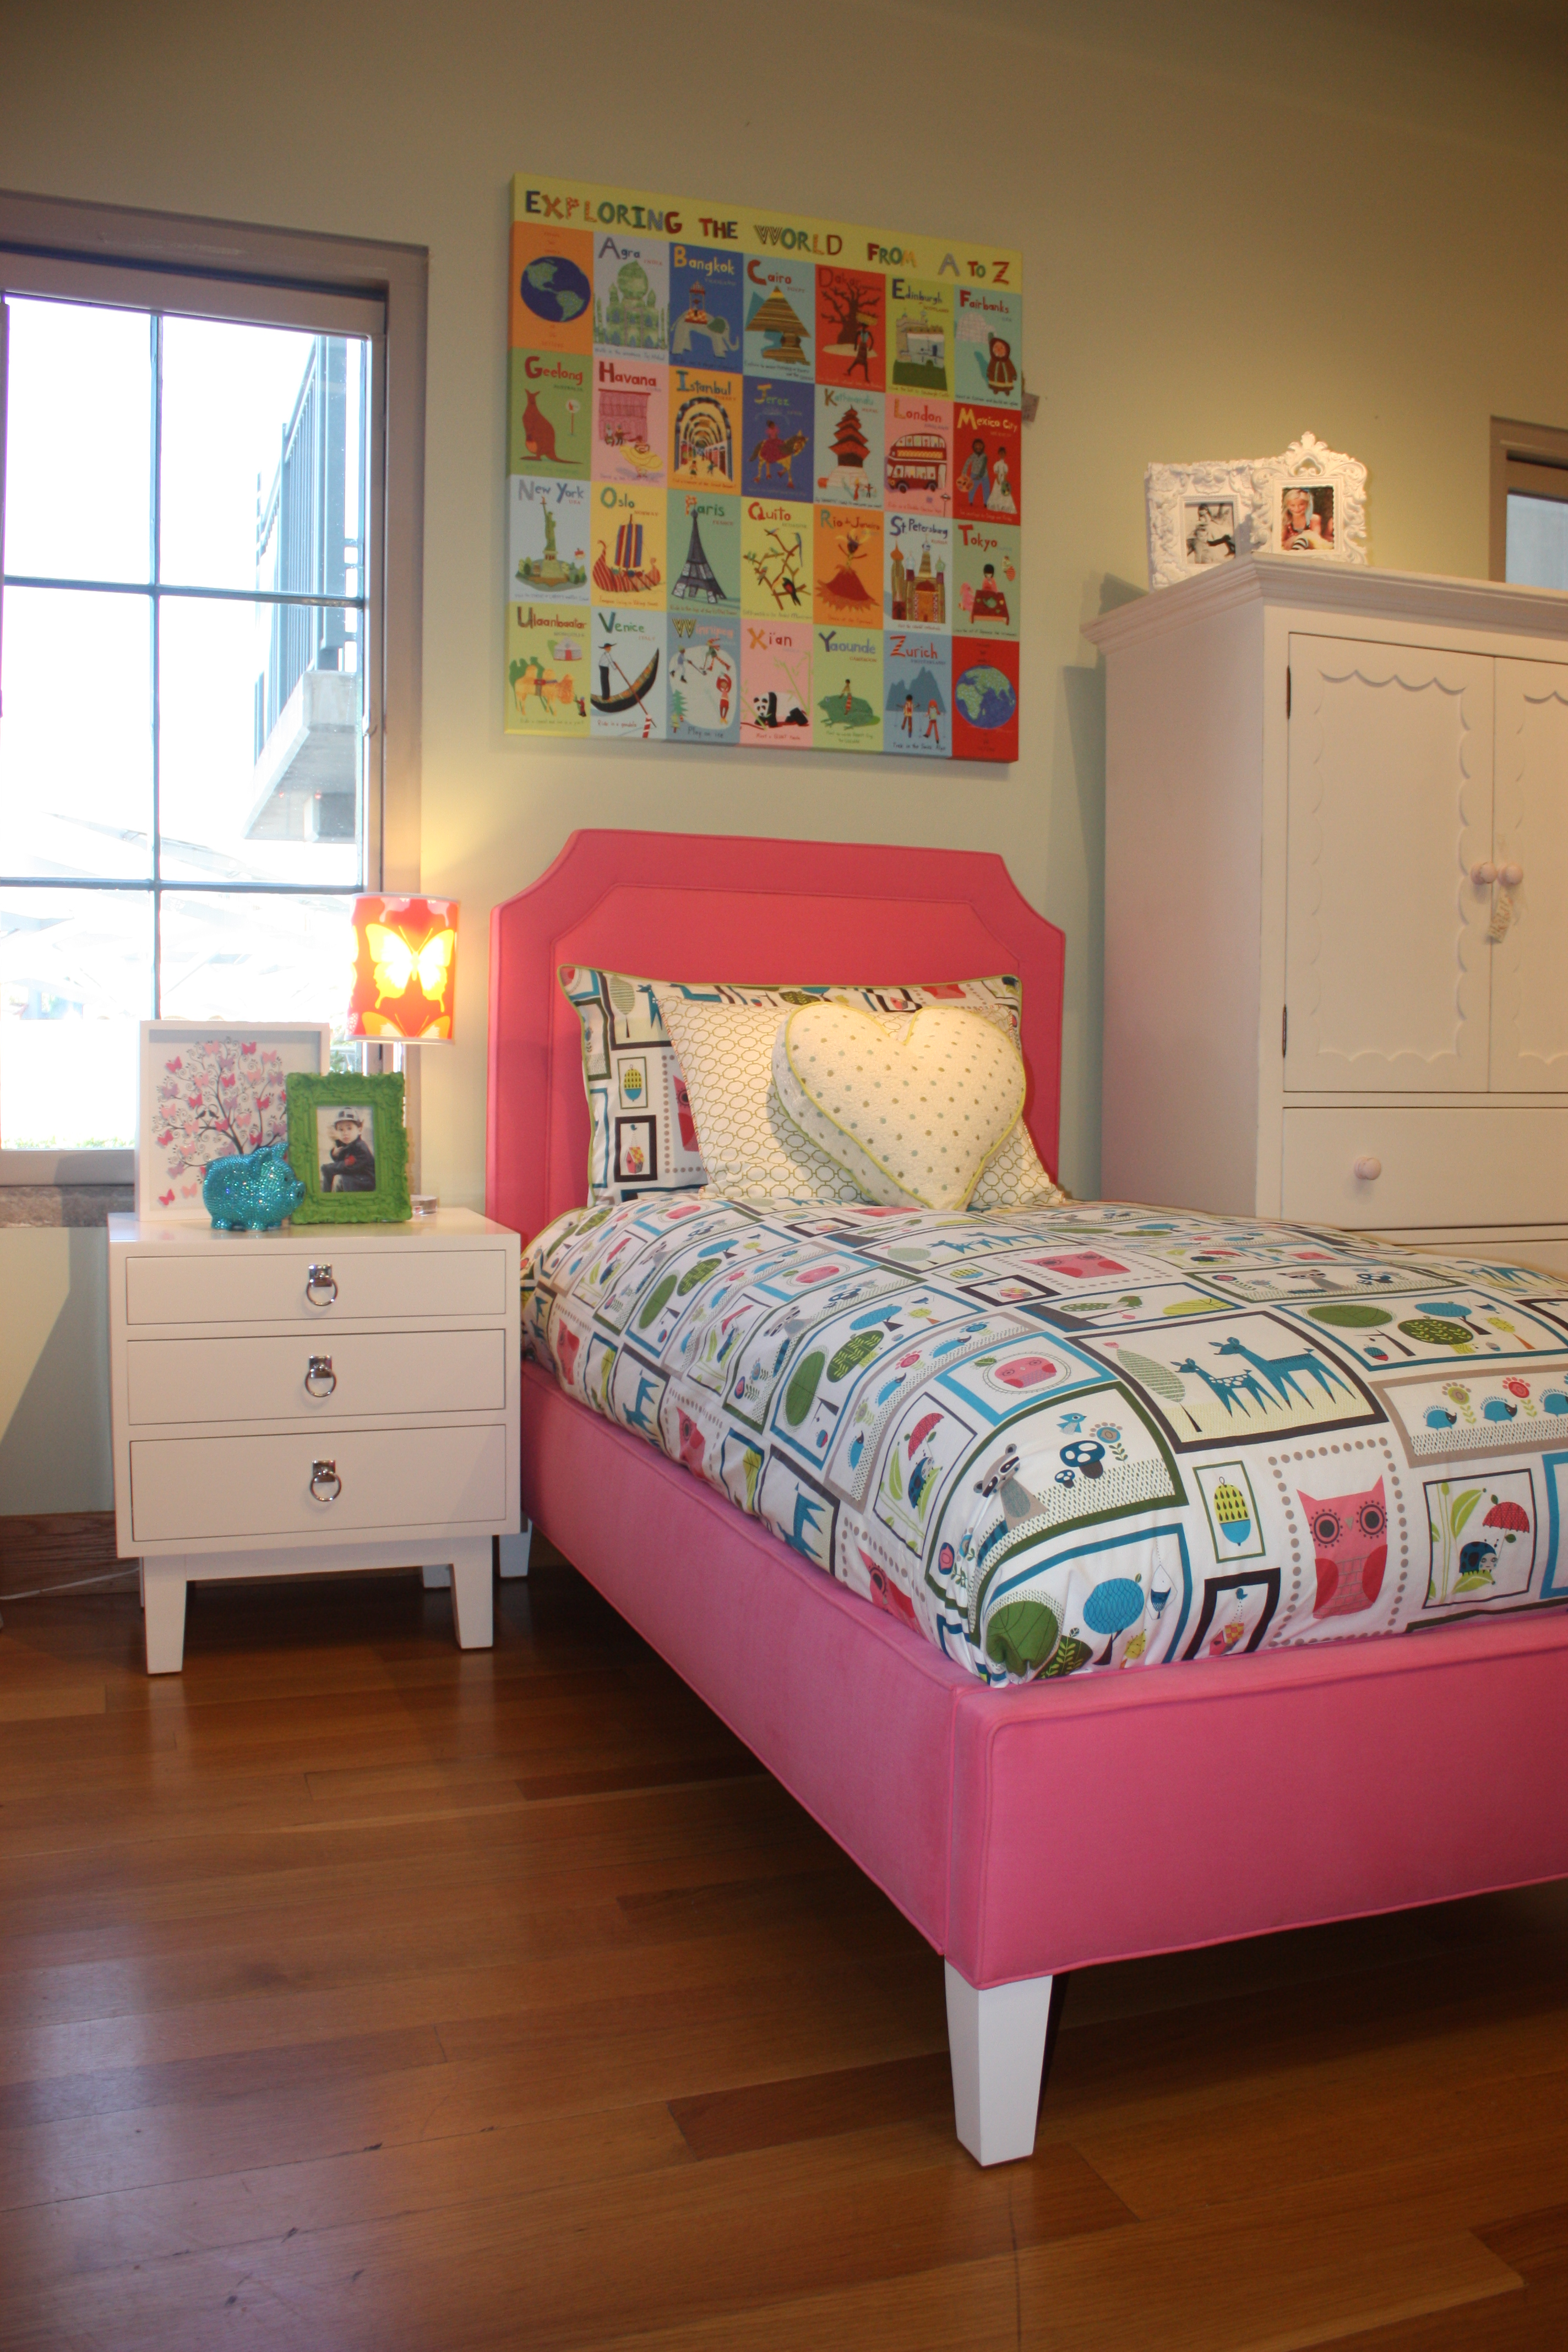 Childs Bedroom bespoke furniture ideas for your child's bedroom